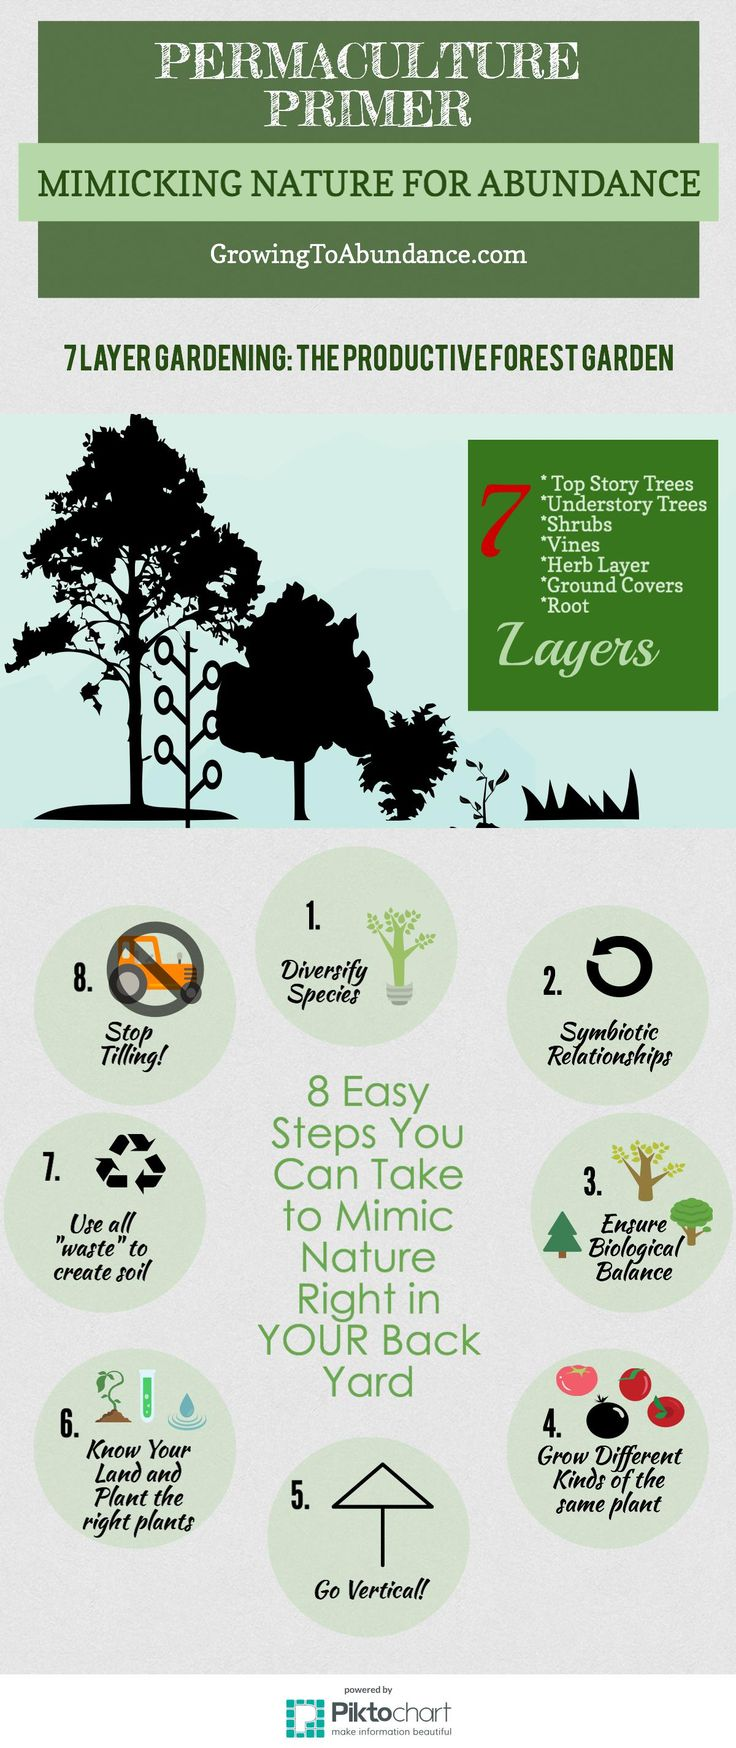 Permaculture Design Examples Google Search: 1000+ Images About Permaculture And Hugelkultur On